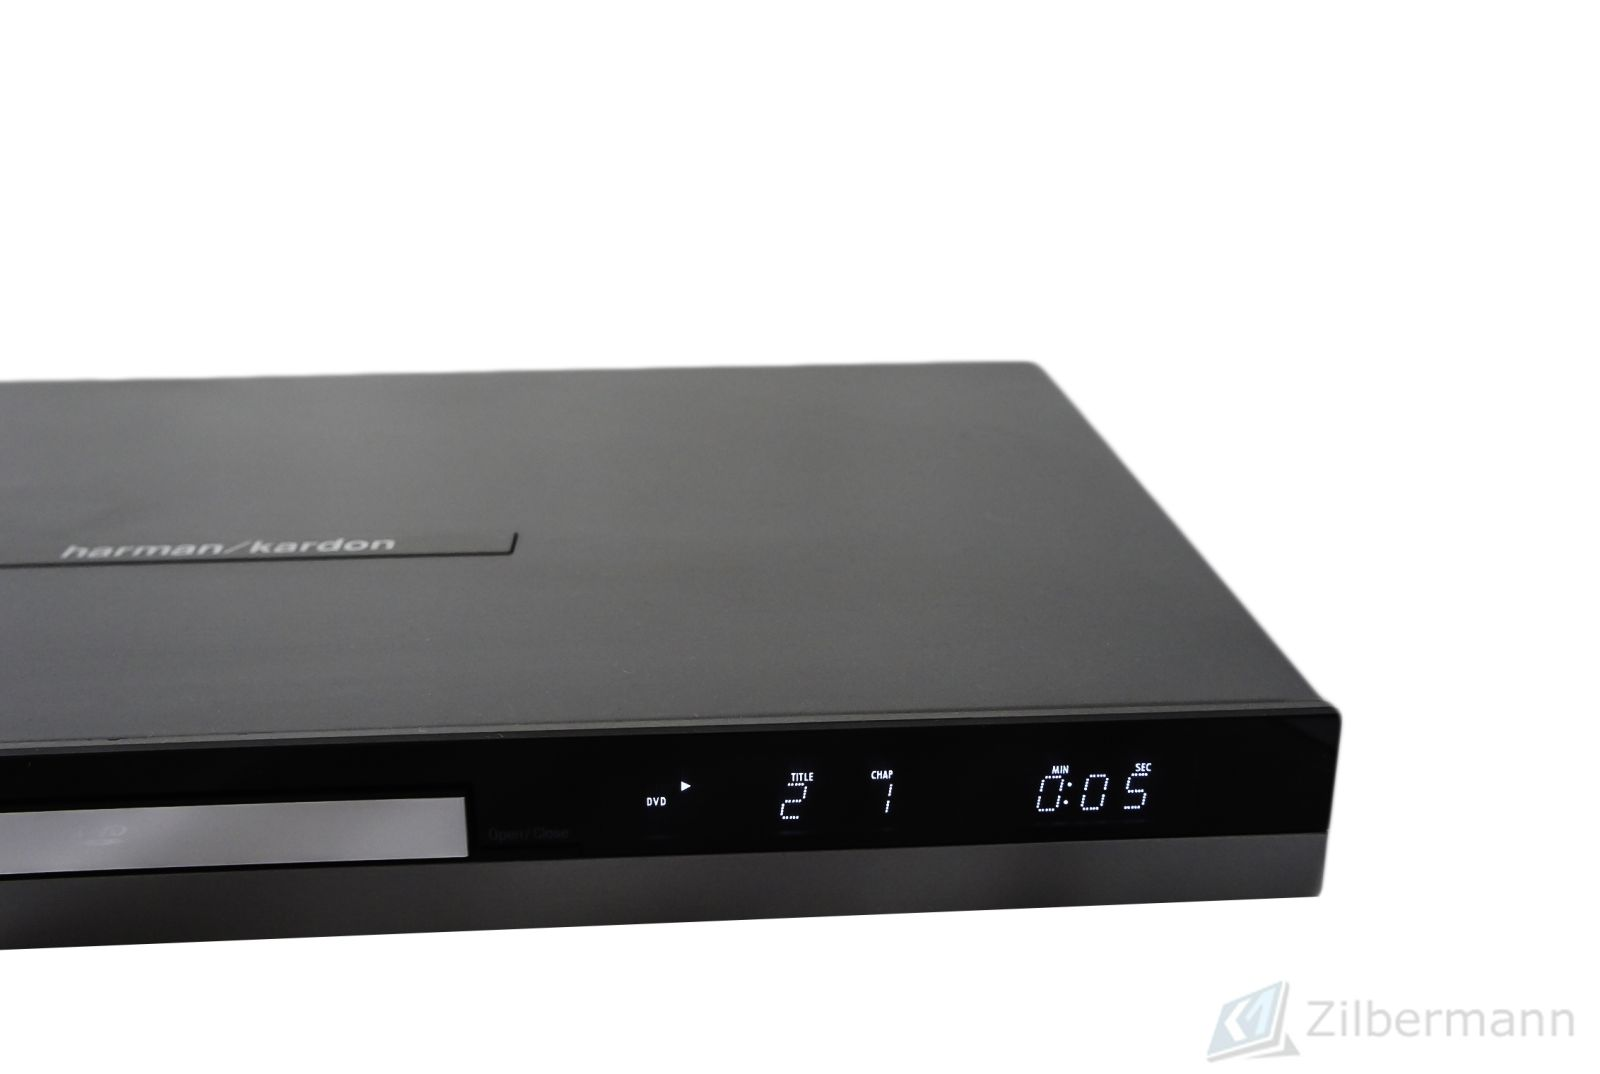 Harman_Kardon_DVD_27_DVD_Player